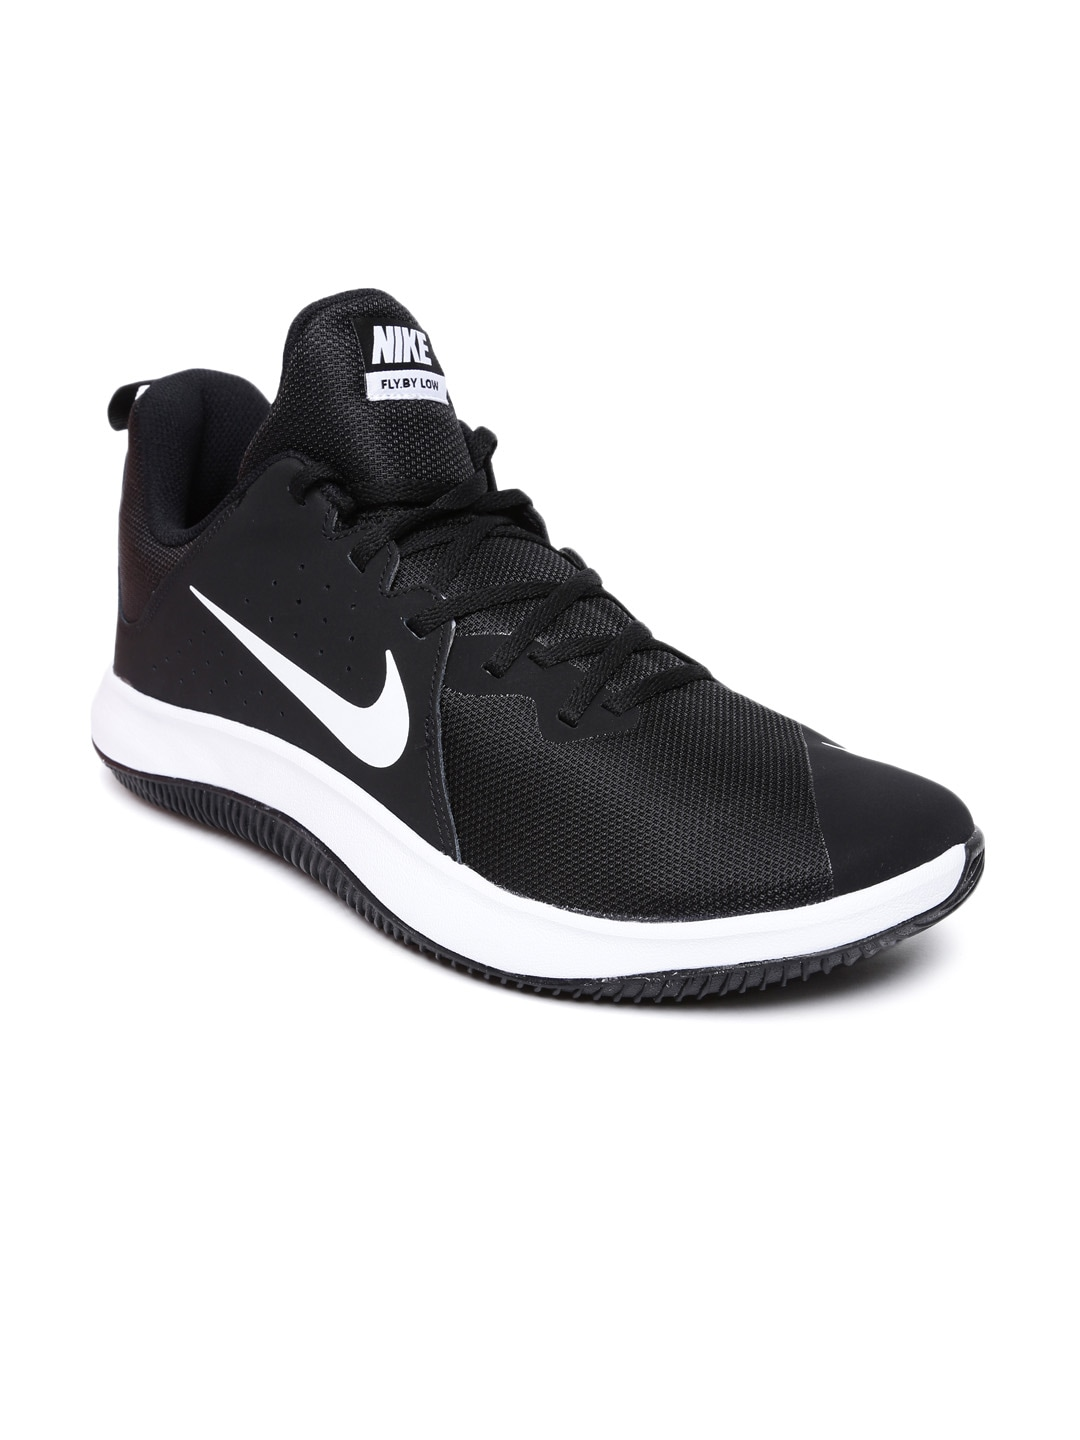 Nike Shoes for Men - Buy Men s Nike Shoes Online  093a4f49697c